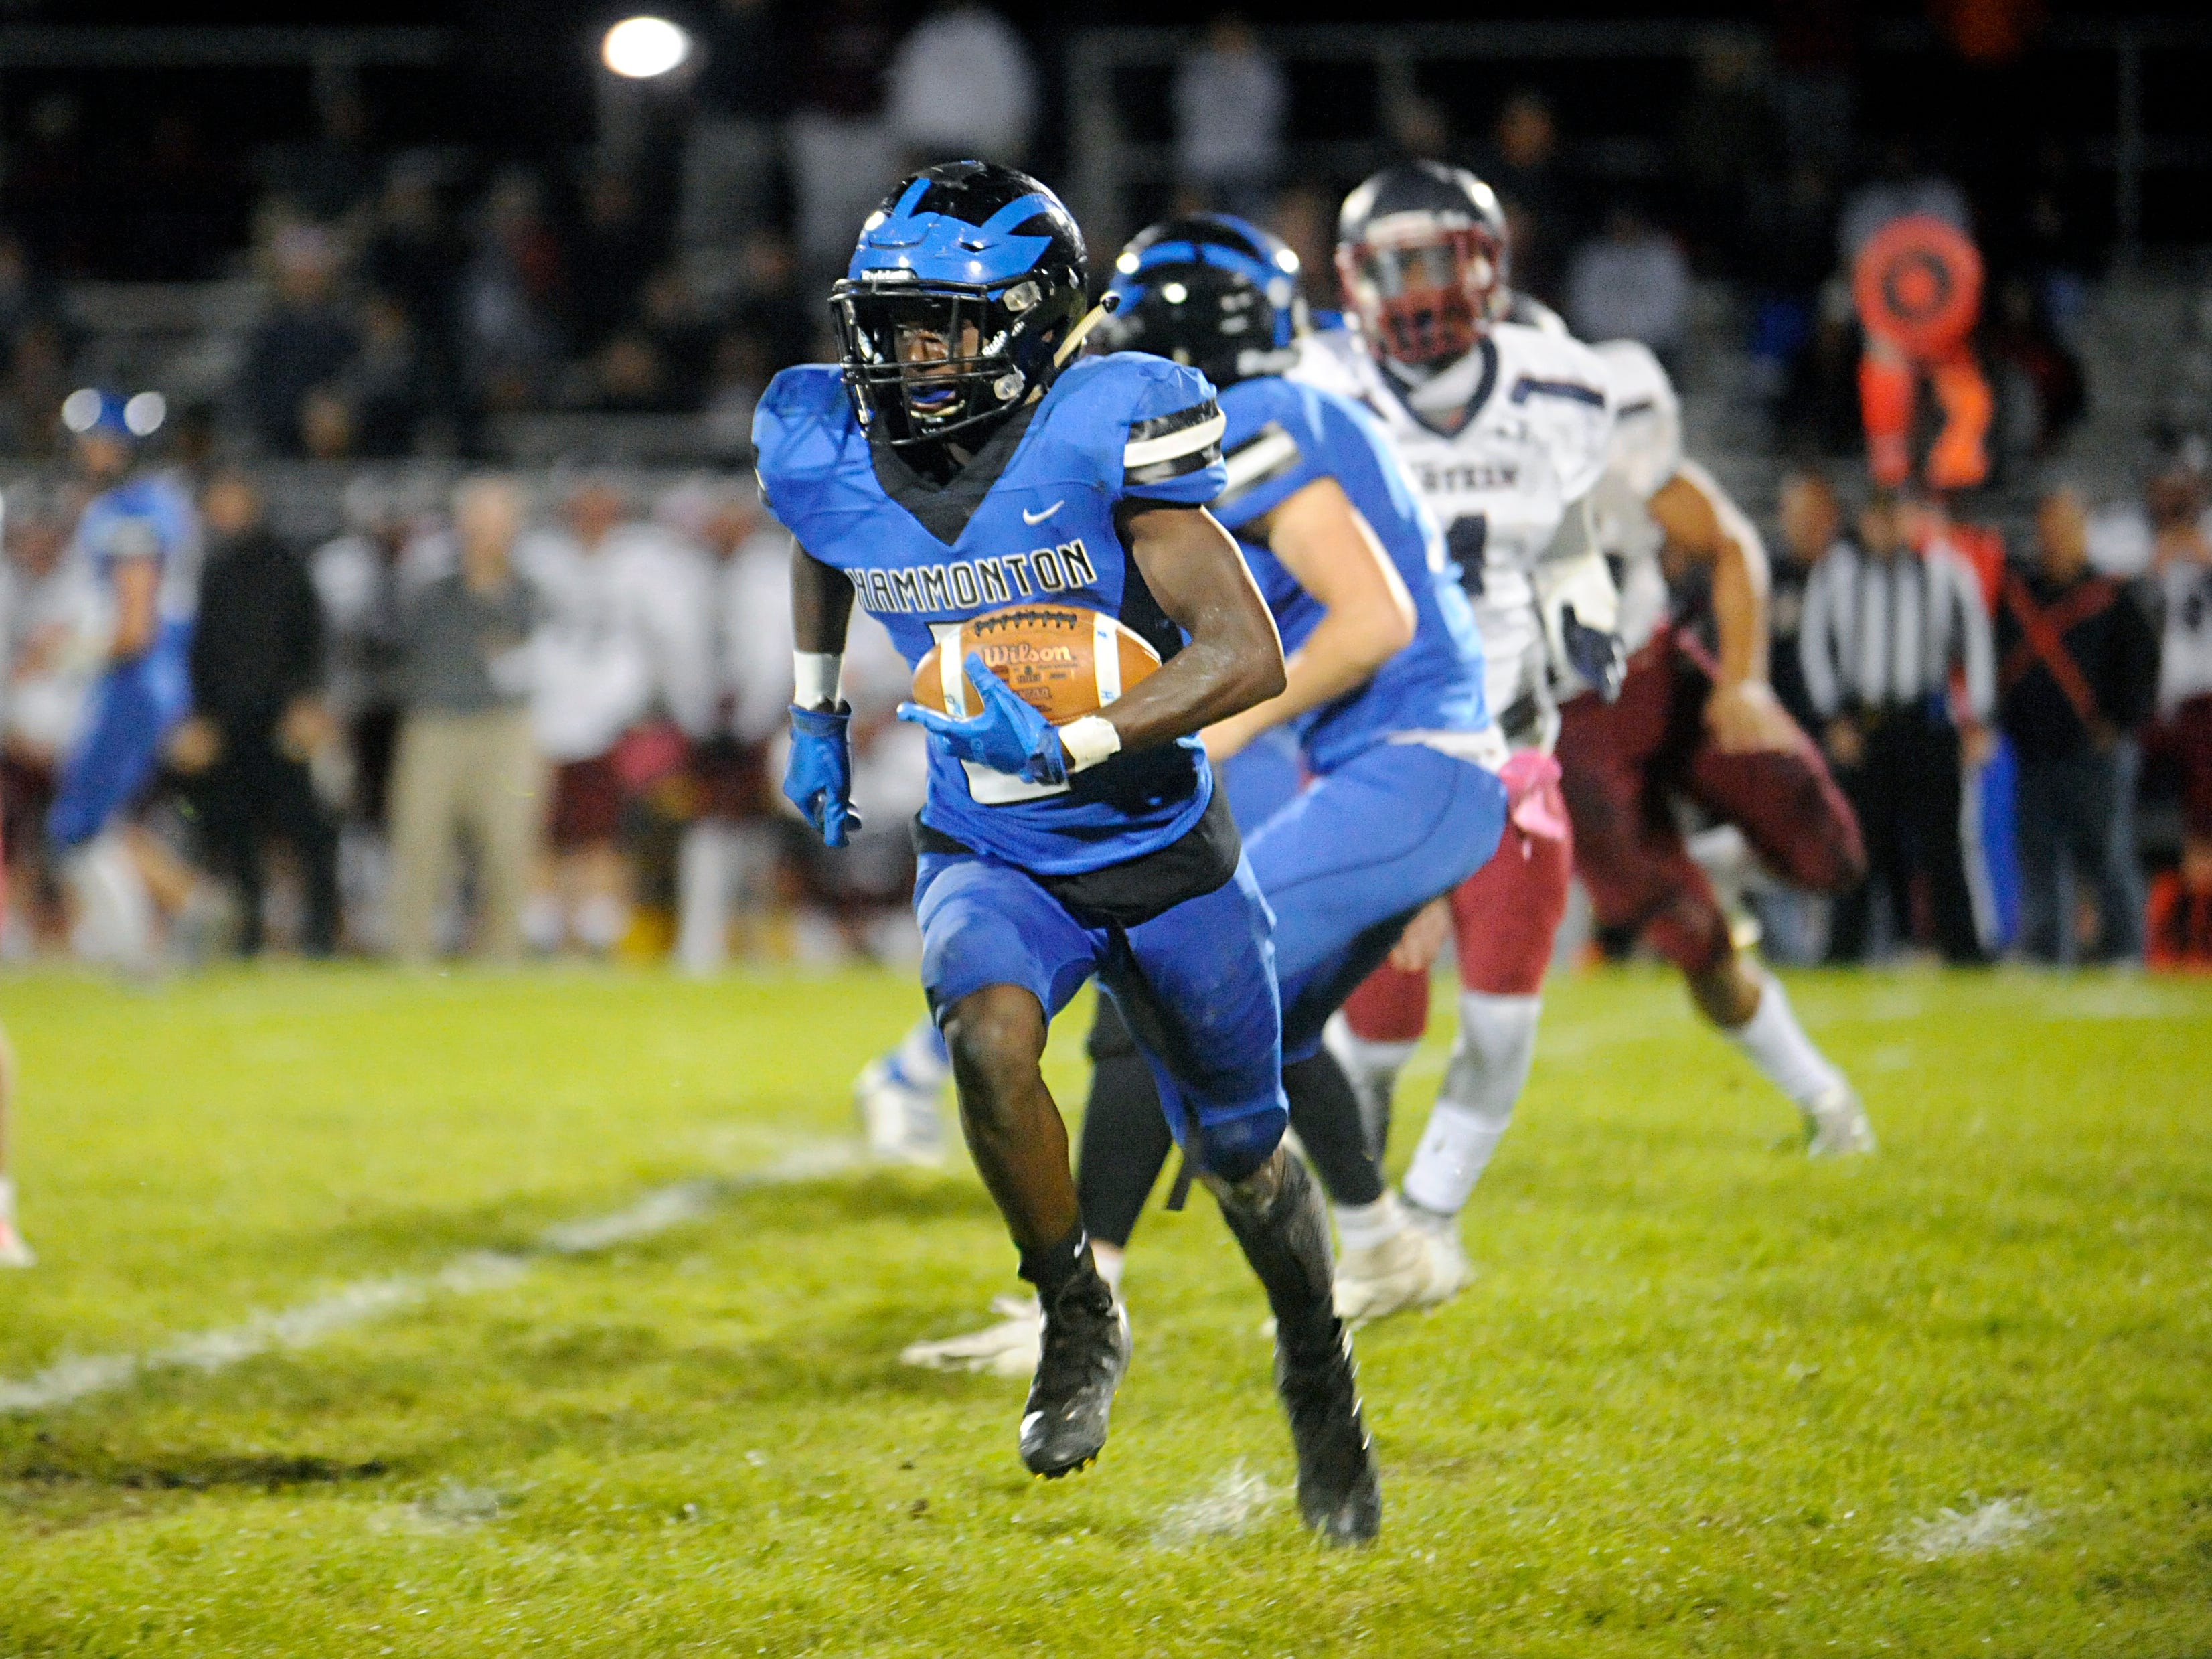 Hammonton's Caleb Nartey runs for a gain against visiting Eastern. The Vikings topped the Blue Devils, 13-12, on Friday, October 19, 2018.